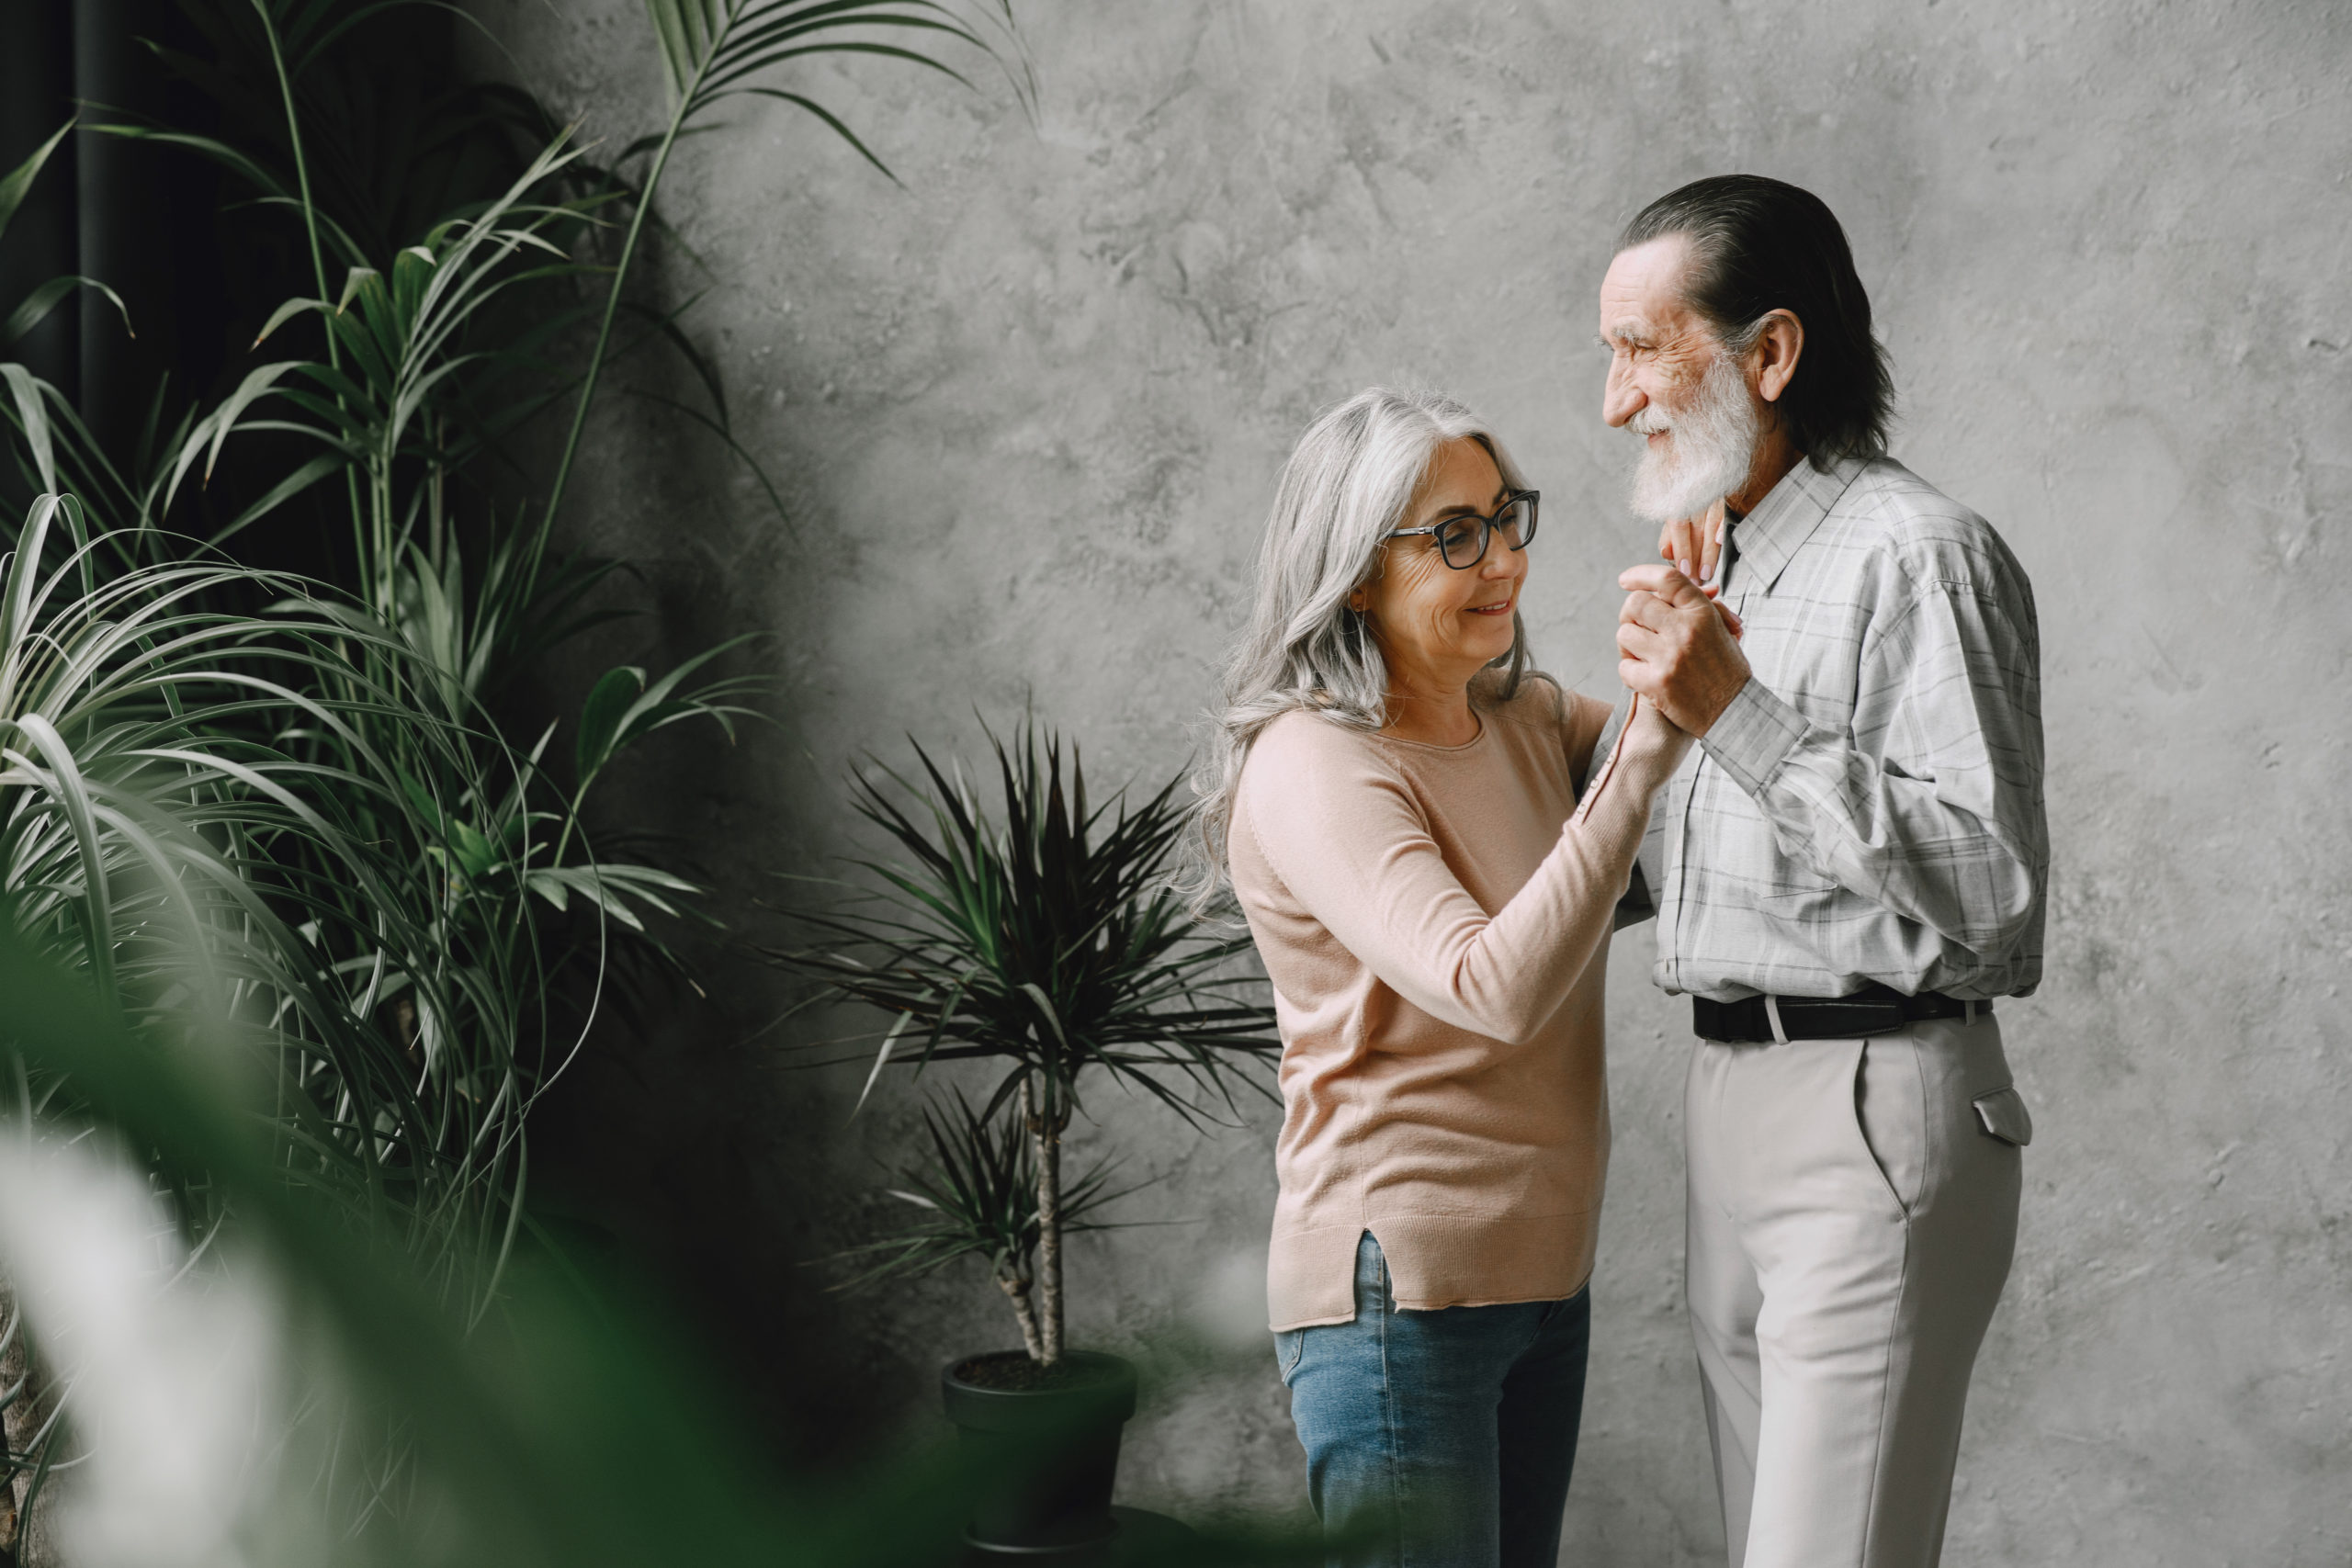 Dance Away the Pain: How Dance Can Ease the Physical and Psychological Symptoms of Parkinson's Disease